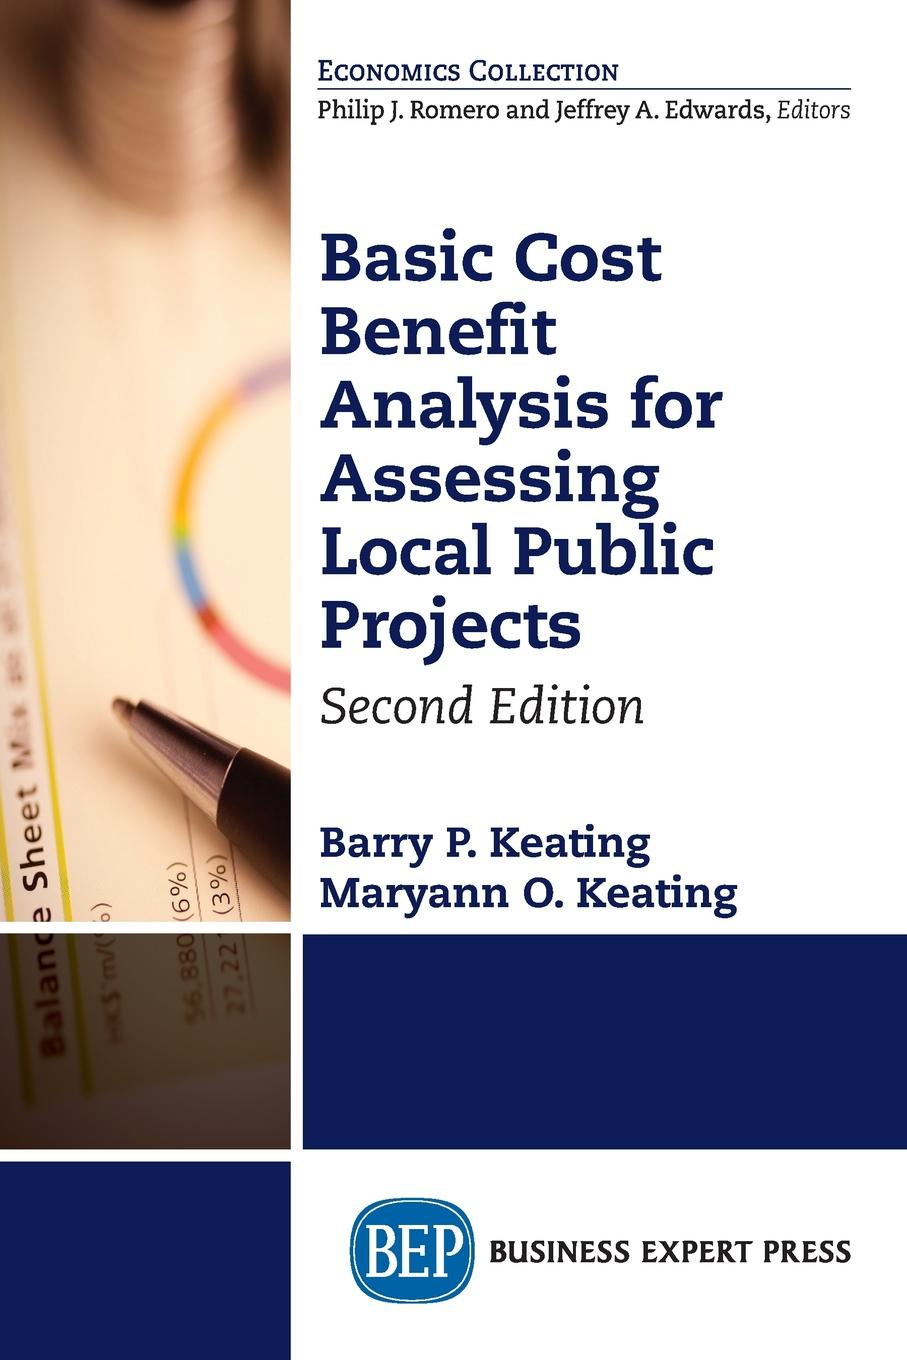 Barry P. Keating, Maryann O. Keating Basic Cost Benefit Analysis for Assessing Local Public Projects, Second Edition david weimer cost benefit analysis and public policy